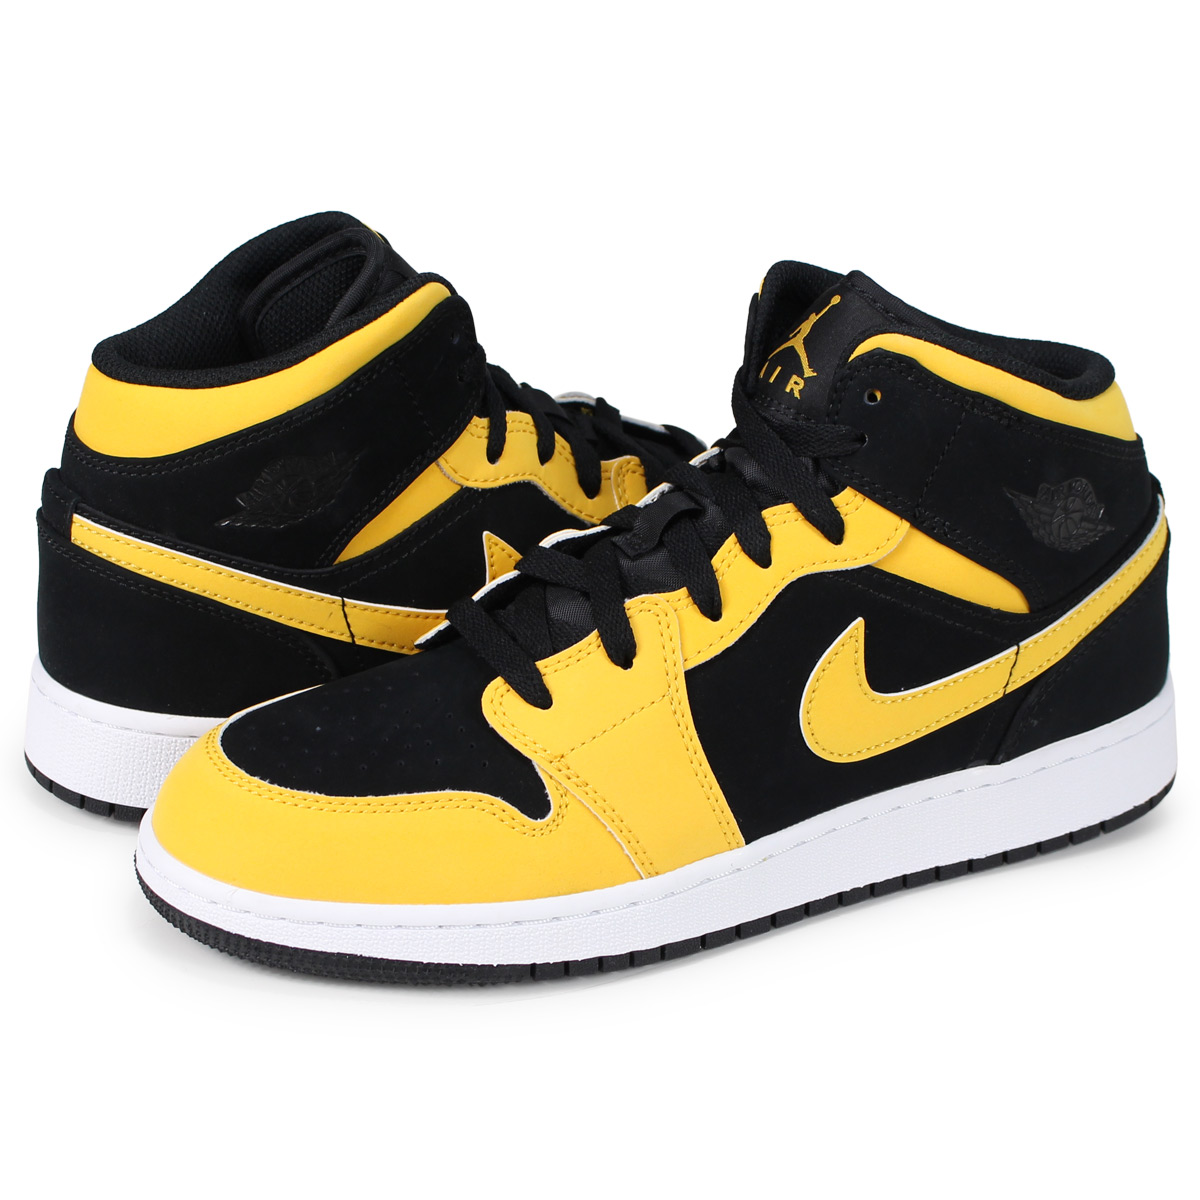 sports shoes 8bcde 70b5f Nike NIKE Air Jordan 1 Lady's sneakers AIR JORDAN 1 MID GS REVERSIBLE NEW  LOVE black 554,725-071 [load planned Shinnyu load in reservation product ...